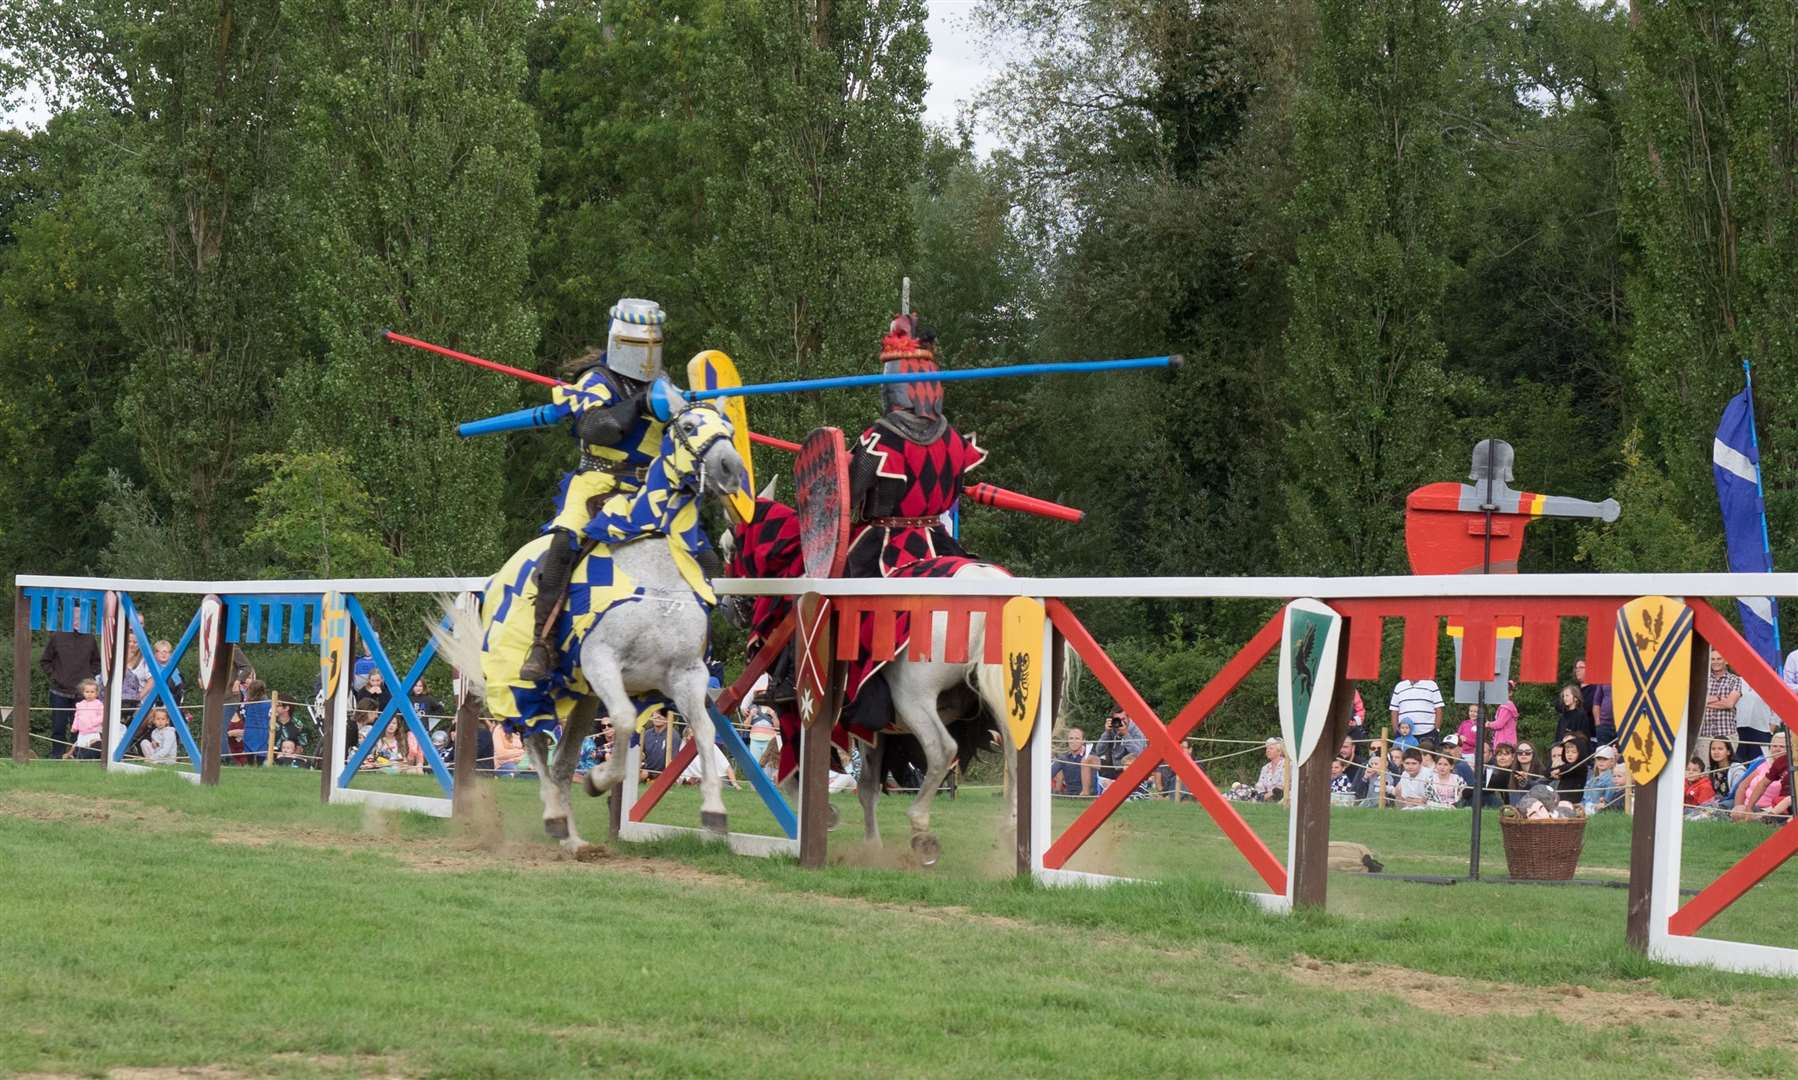 Jousting at Hever Castle is taking place across the bank holiday weekend